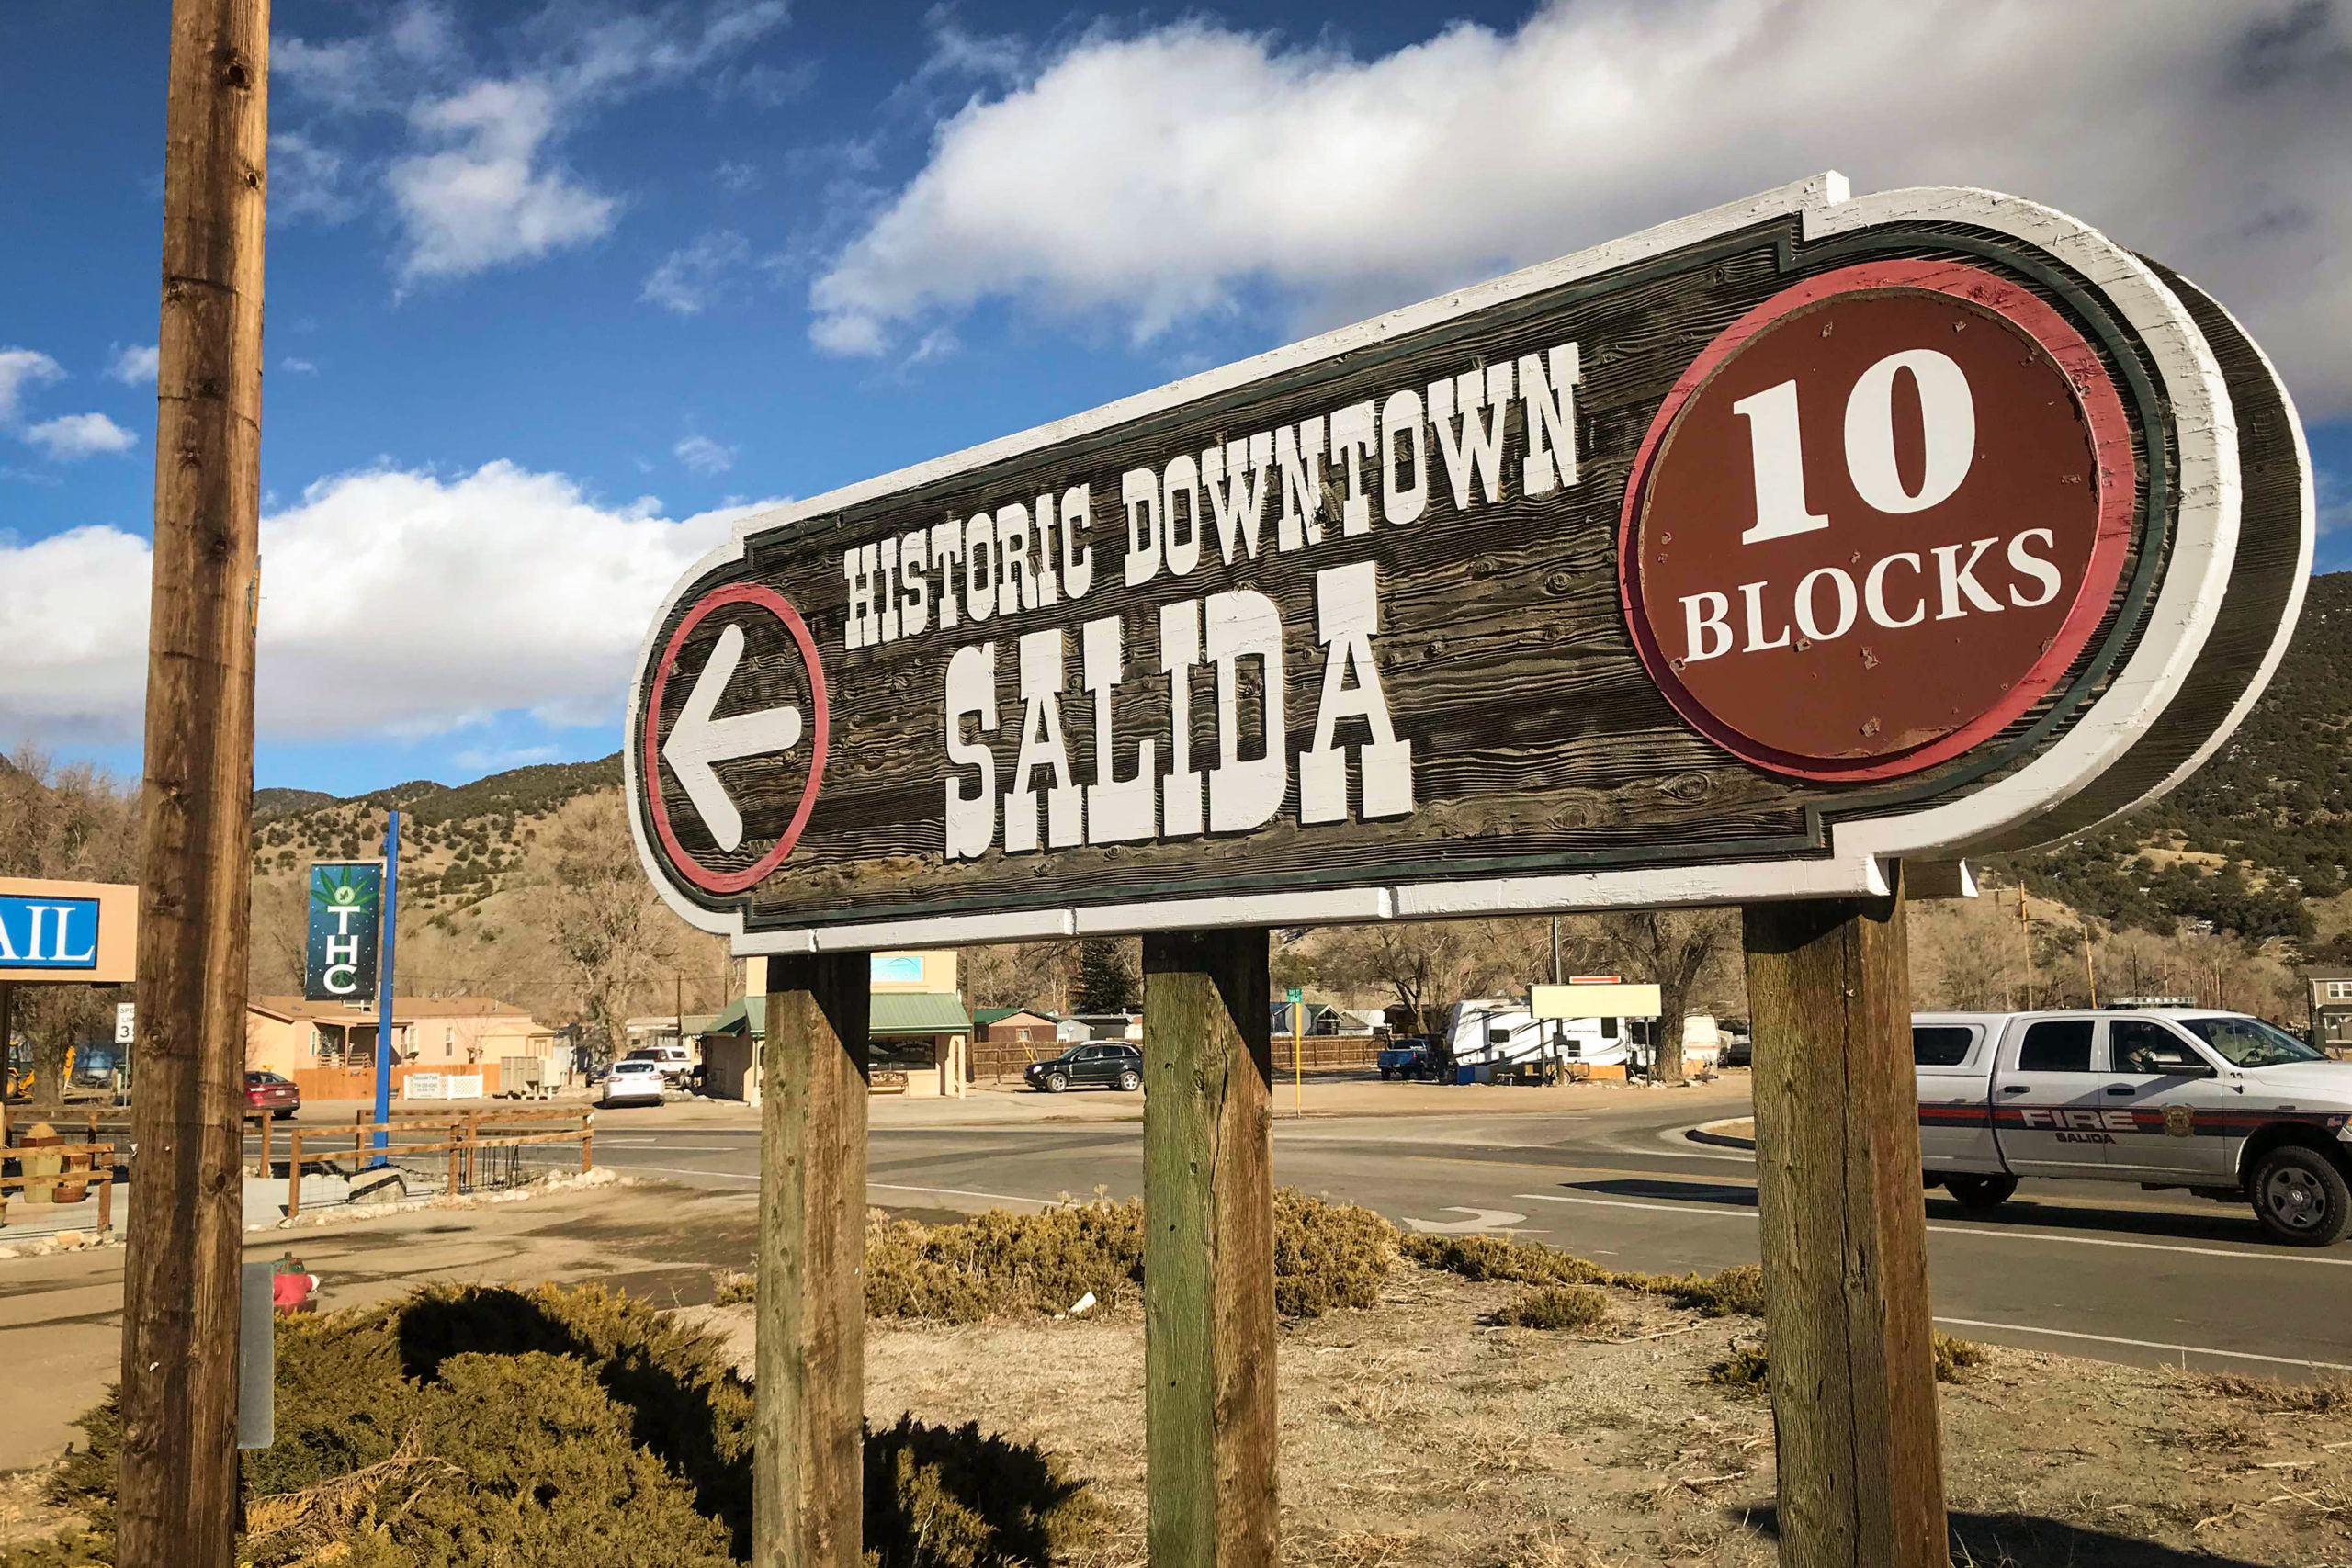 Looking for downtown Salida, Colo? This sign points the way.